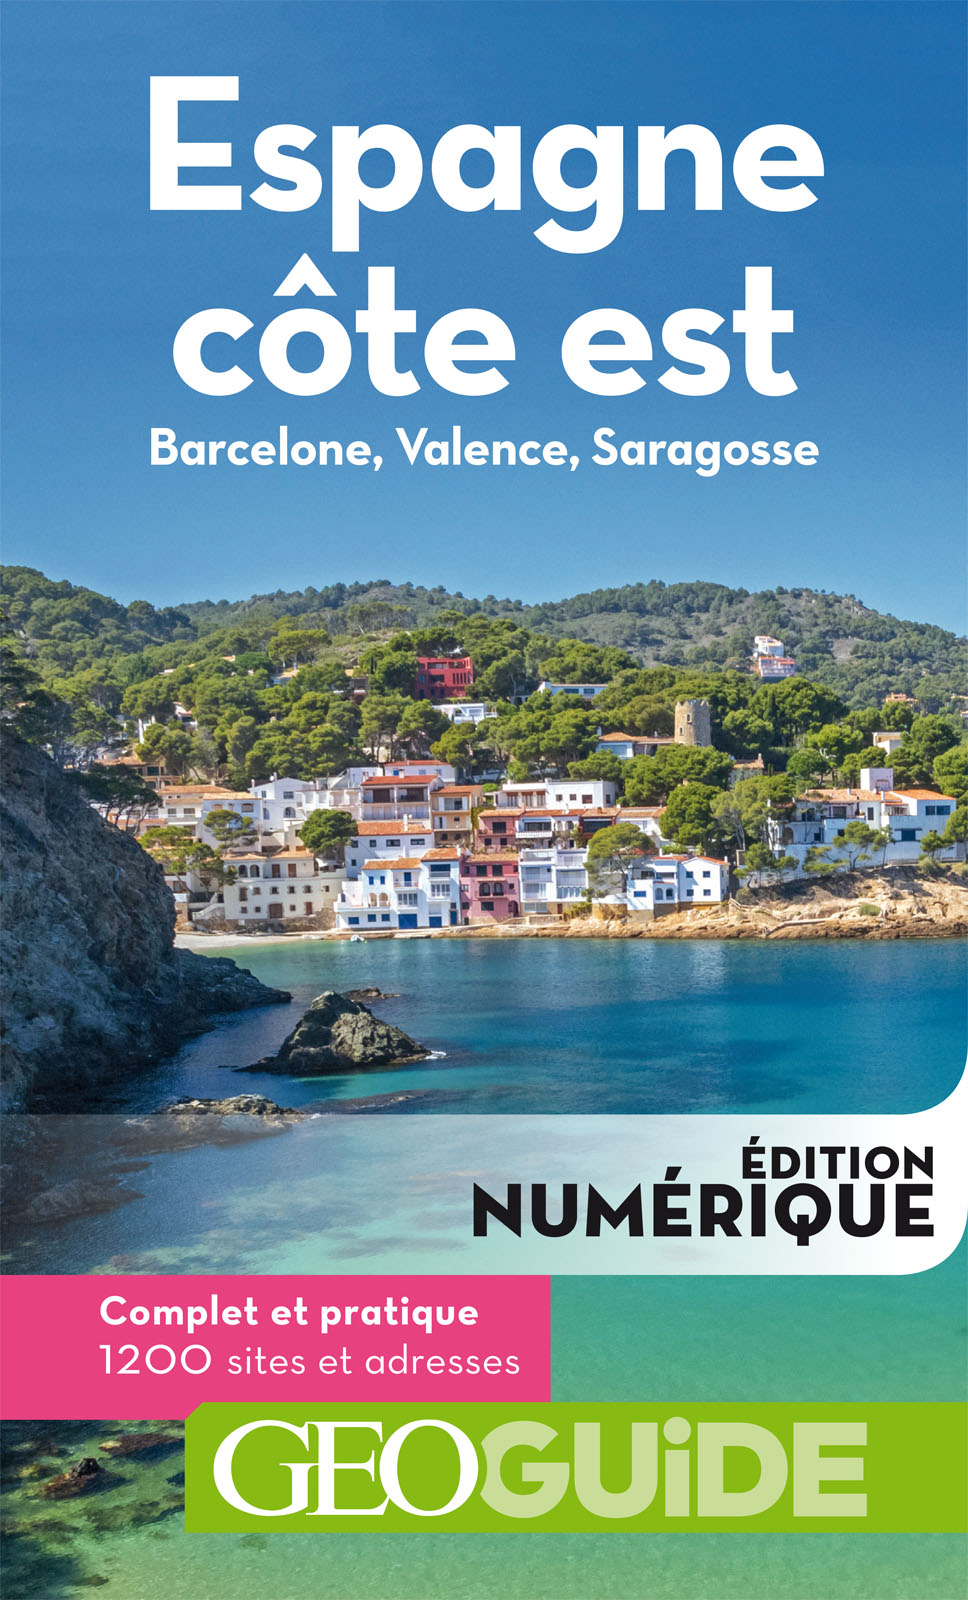 GEOguide Espagne côte est. Barcelone, Valence, Saragosse | Collectif Gallimard Loisirs,